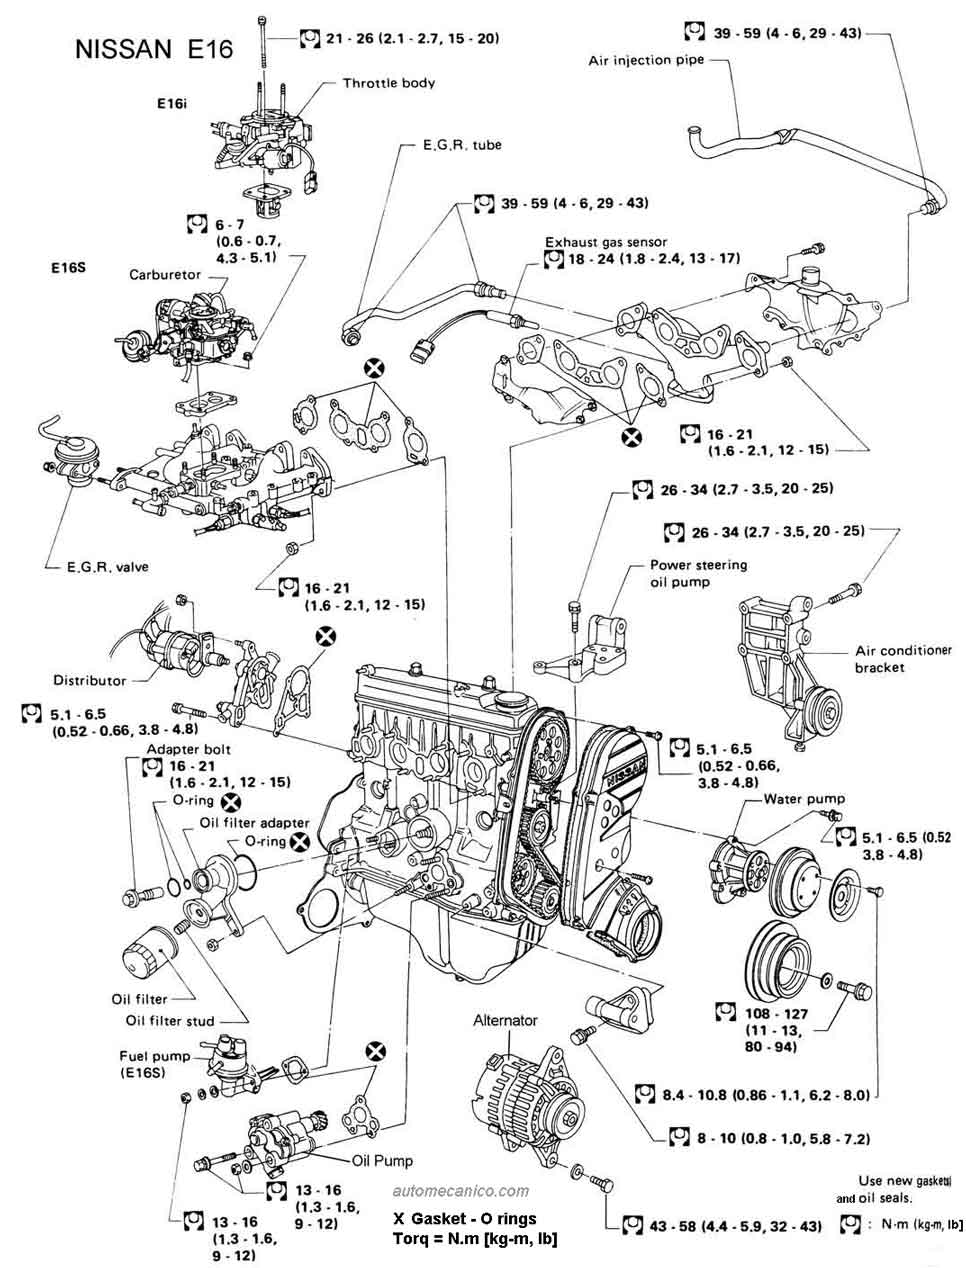 Cadillac Catera 3 0 Engine Diagram. Cadillac. Auto Wiring